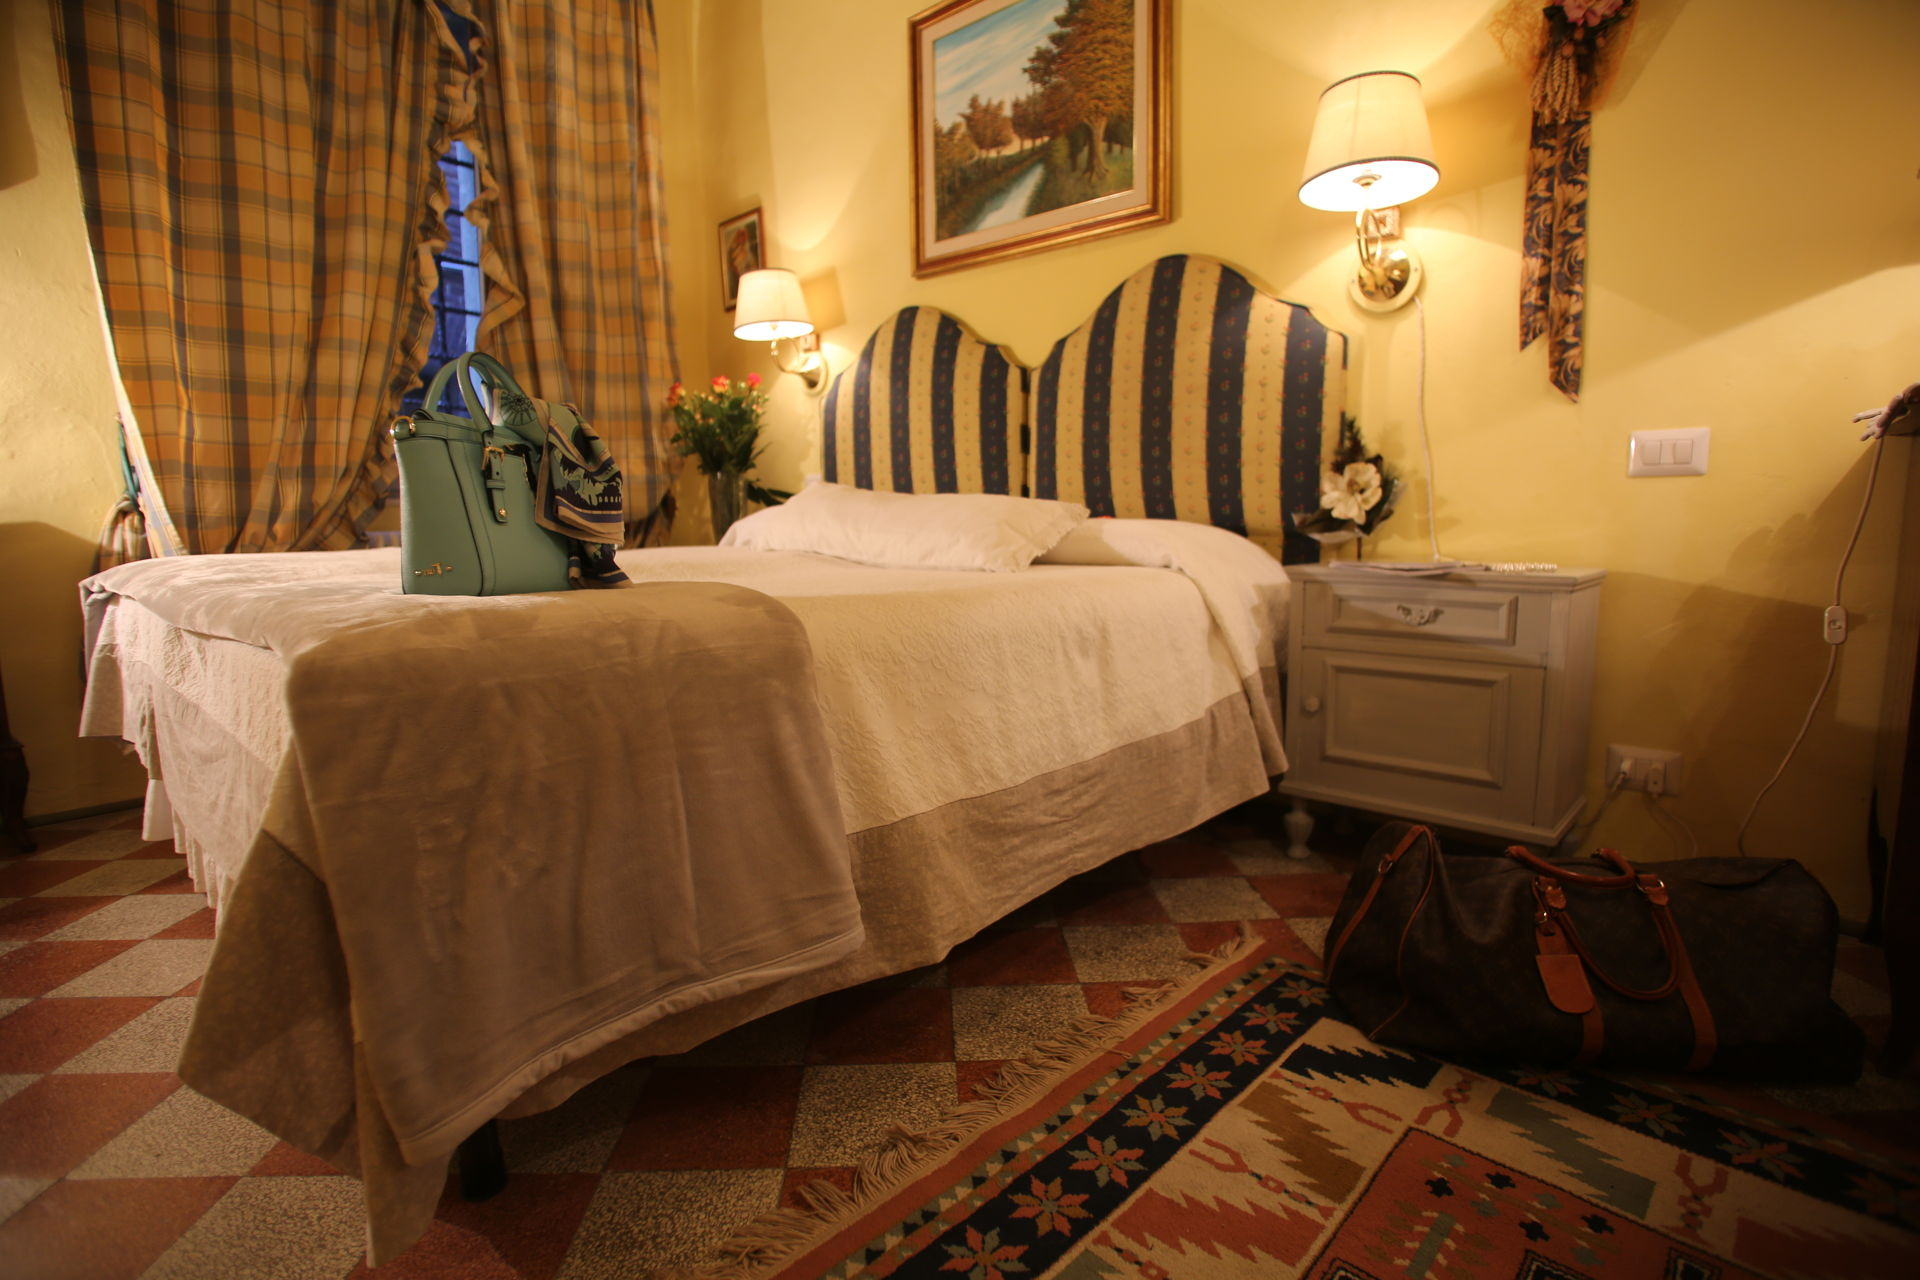 bed-and-breakfast-le-aquile-siena-smeraldo-2